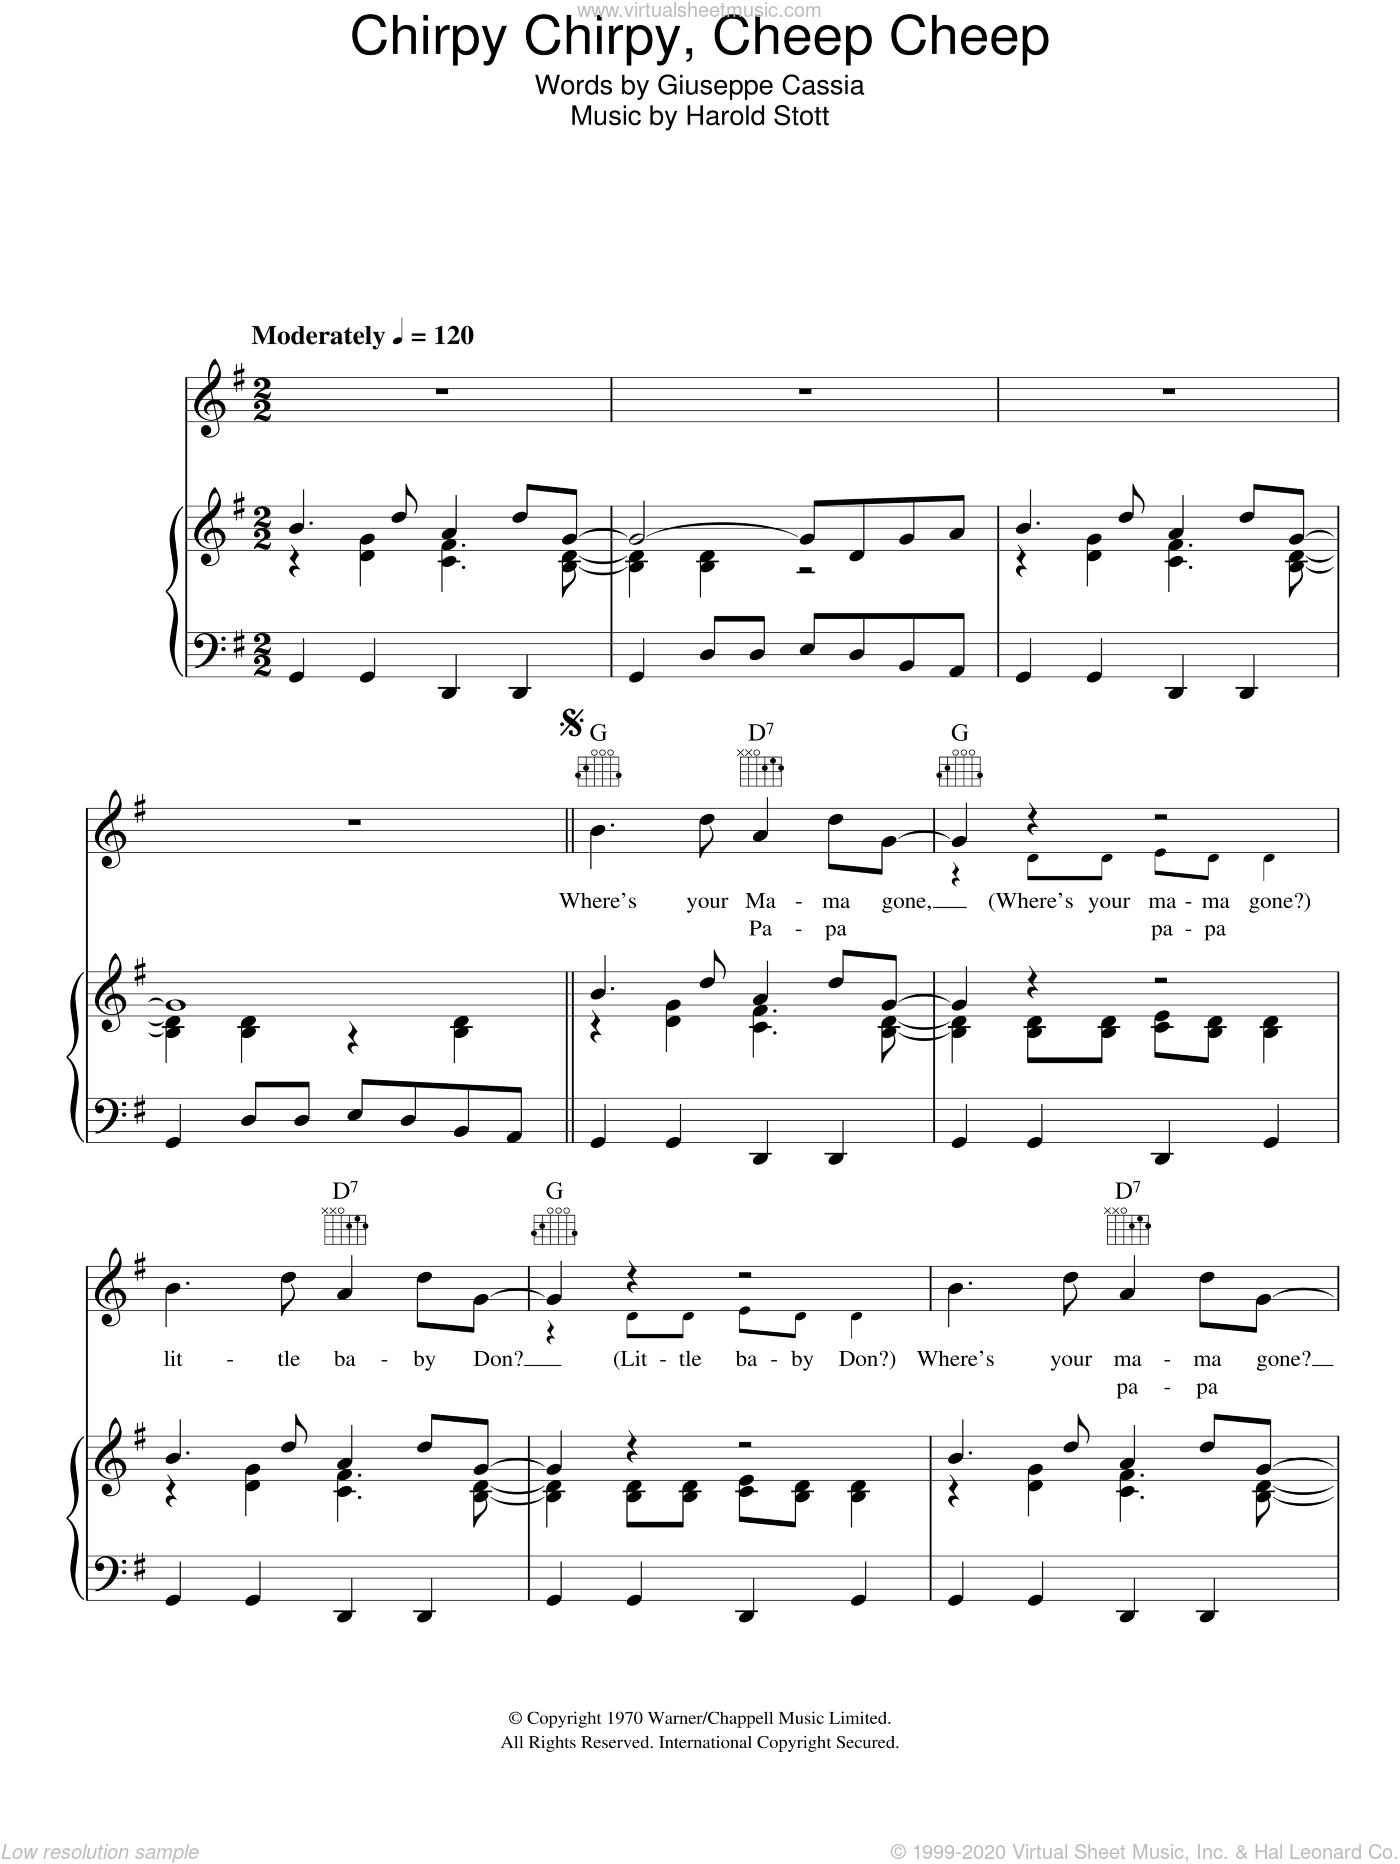 Chirpy Chirpy Cheep Cheep sheet music for voice, piano or guitar by Harold Stott. Score Image Preview.